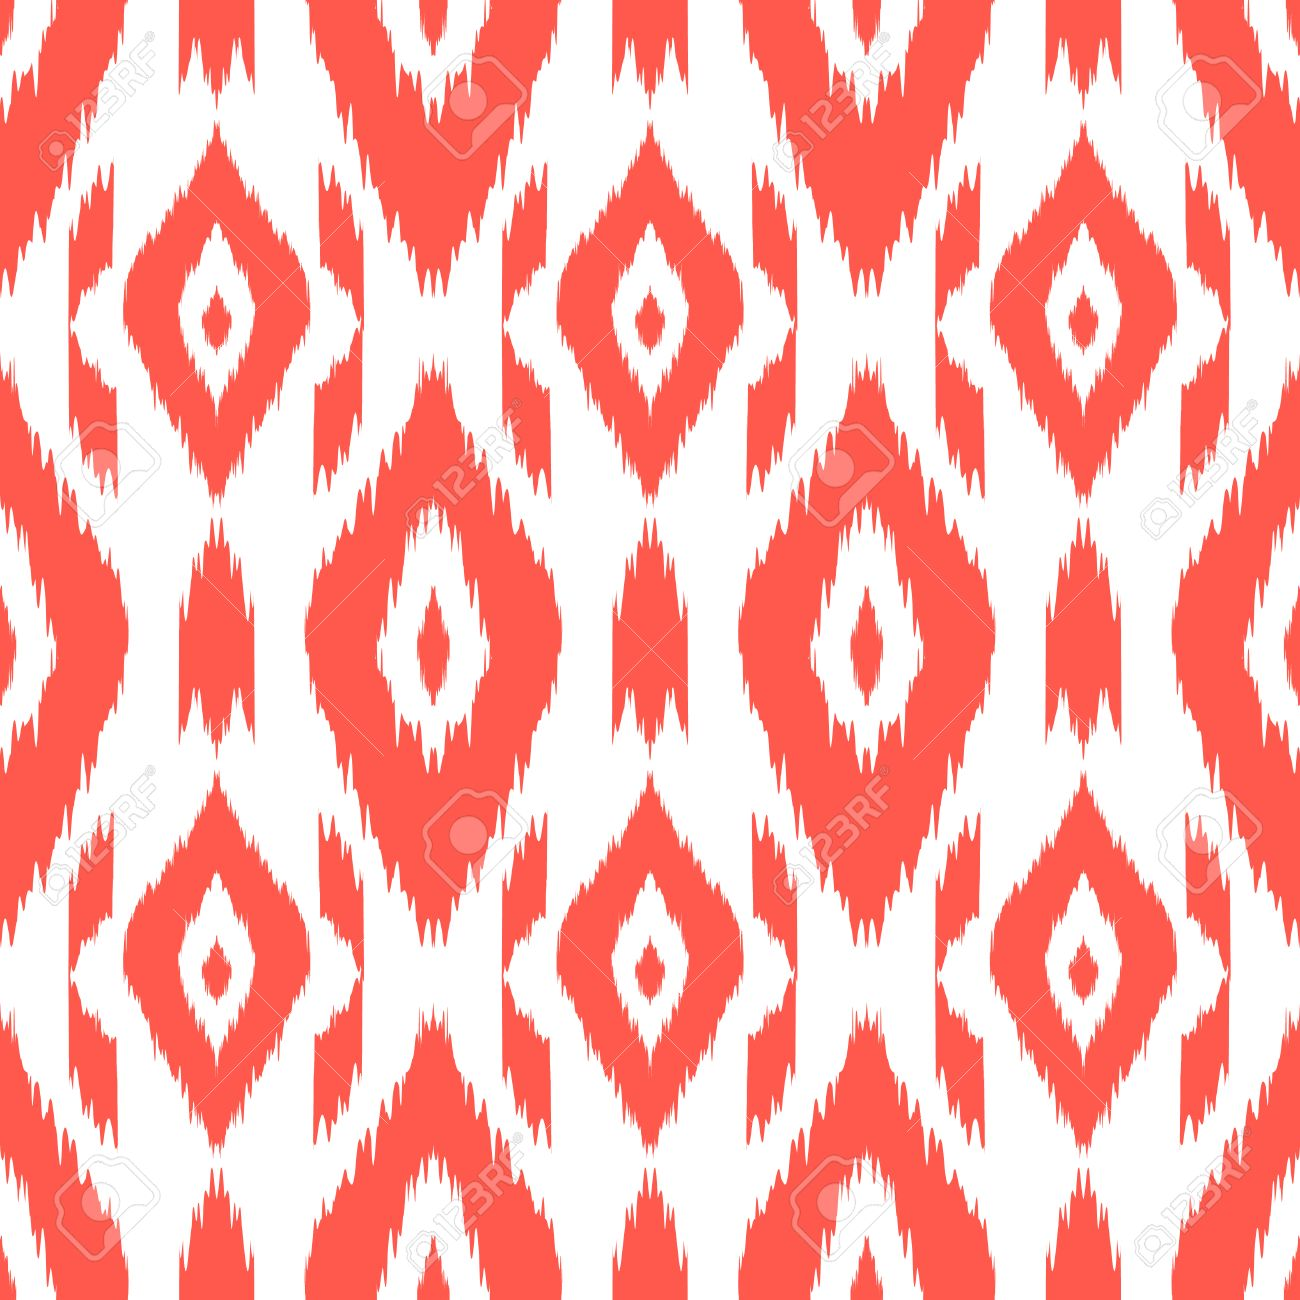 Navajo Wallpaper Home Design on navajo border designs, globe design wallpaper, irish design wallpaper, crystal design wallpaper, hopi design wallpaper, pendleton design wallpaper, navajo indian designs, anchor design wallpaper, portuguese design wallpaper, mayan design wallpaper, sioux design wallpaper, aztec design wallpaper, new mexico design wallpaper, native american design wallpaper, scout design wallpaper, samoan design wallpaper, navajo women's clothing, latin design wallpaper, navajo rug designs, hindi design wallpaper,